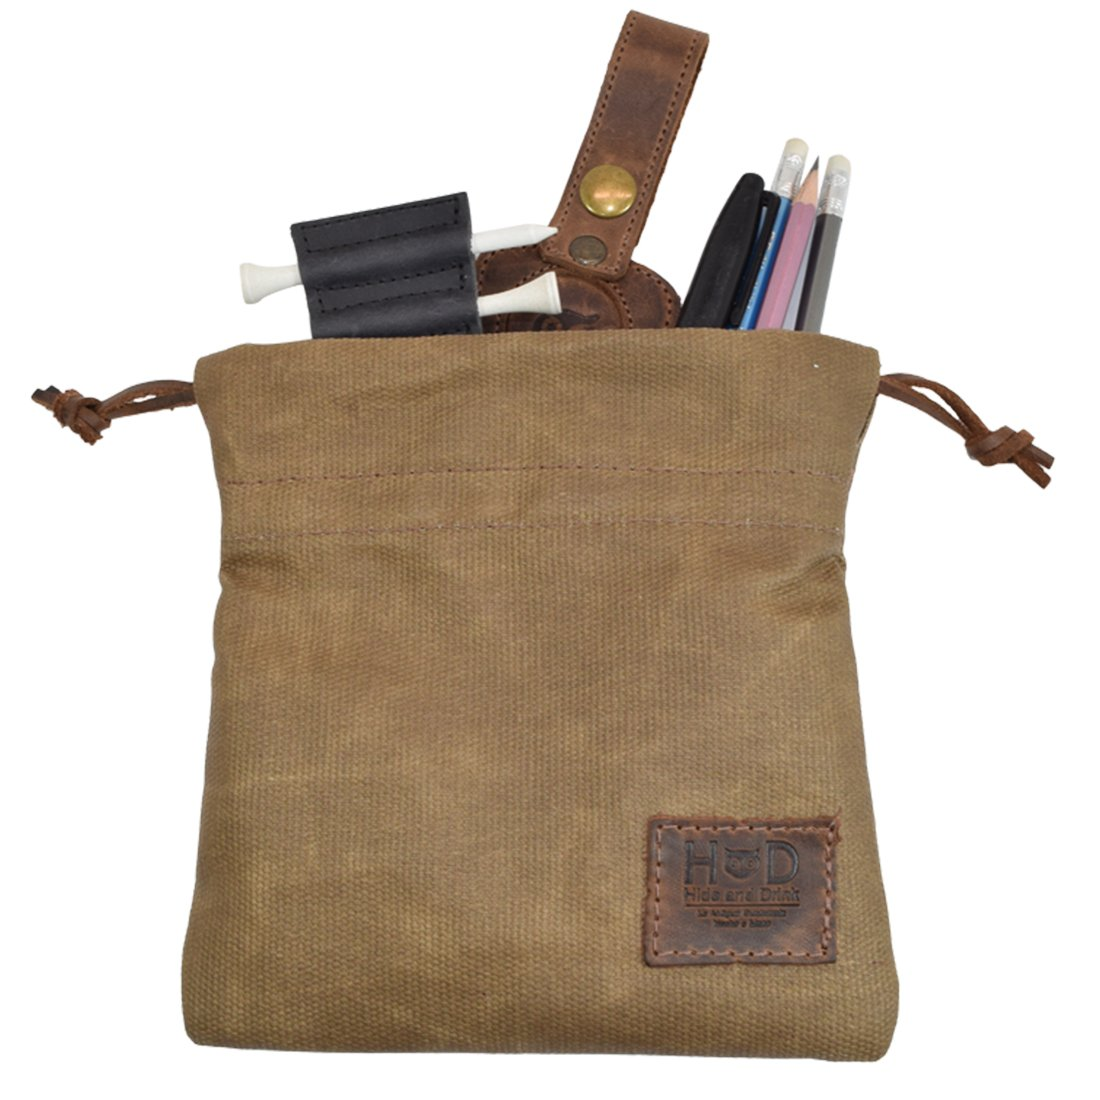 Hide & Drink Waxed Canvas Golf Valuables Field/Travel / Tech/Board Game Dice Pouch Handmade by Fatigue by Hide & Drink (Image #1)